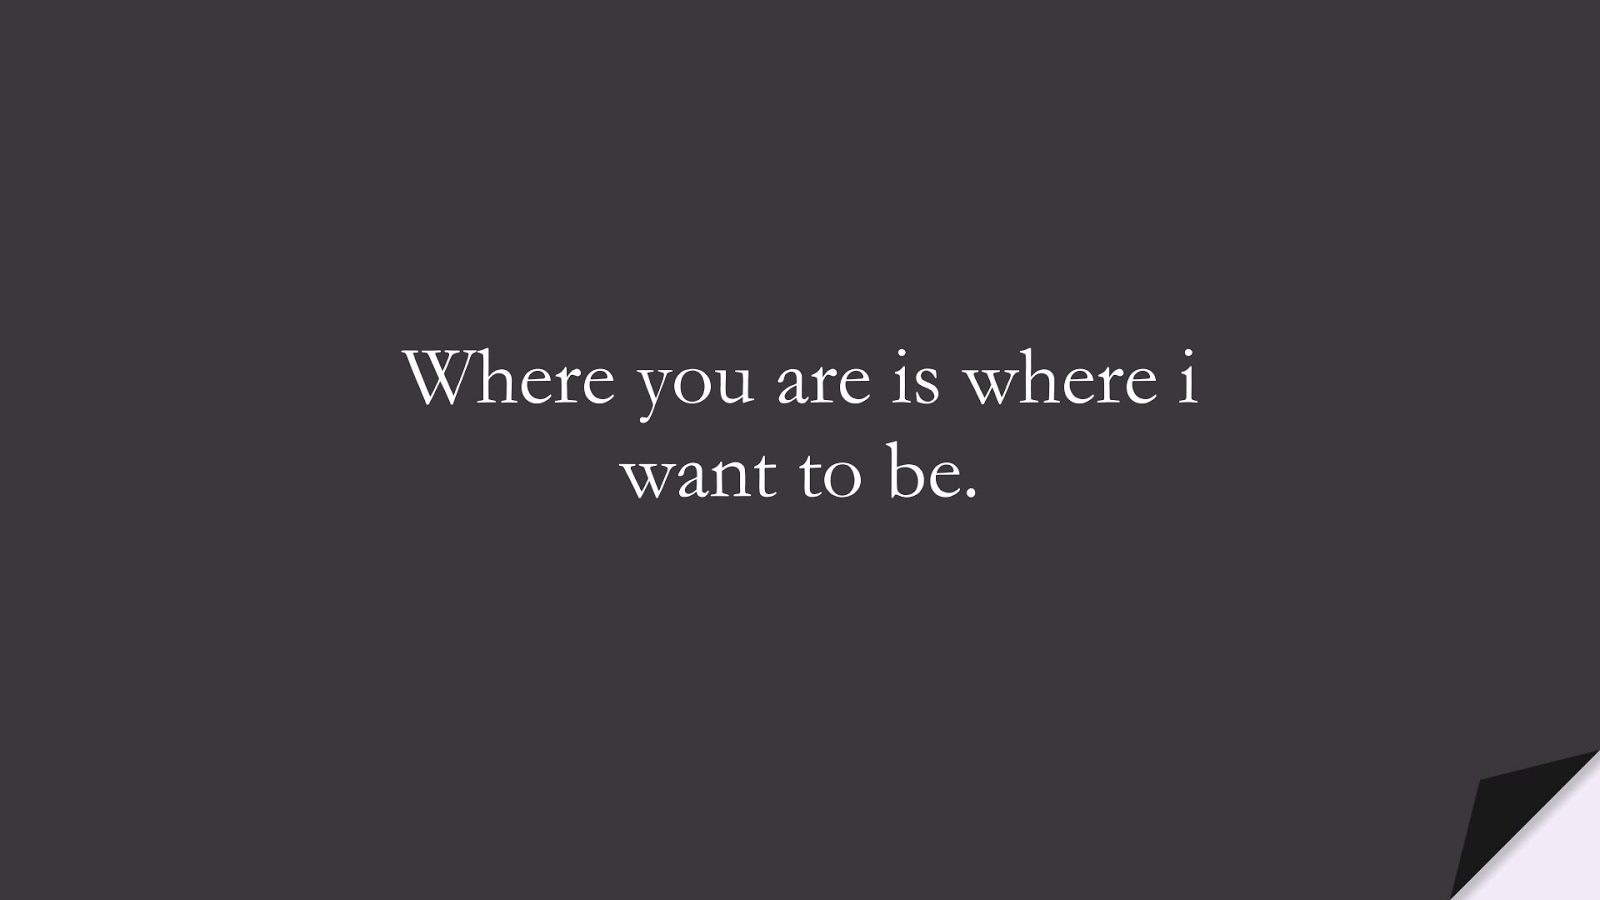 Where you are is where i want to be.FALSE